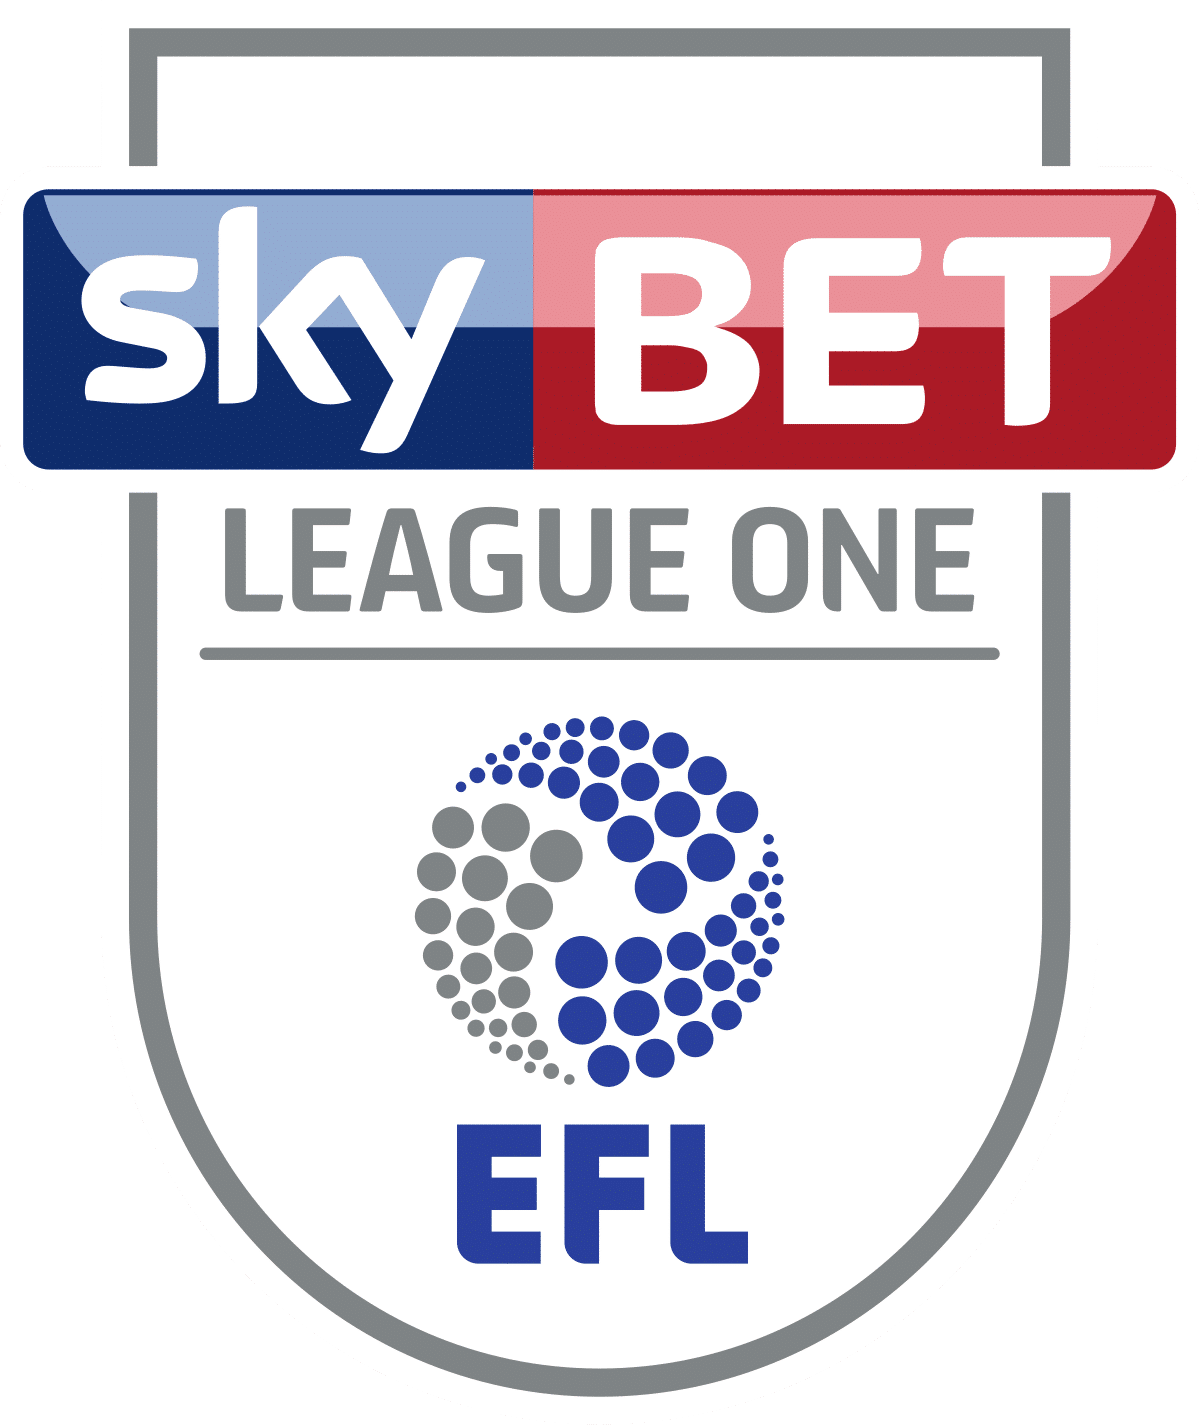 League One / Football Grounds Map